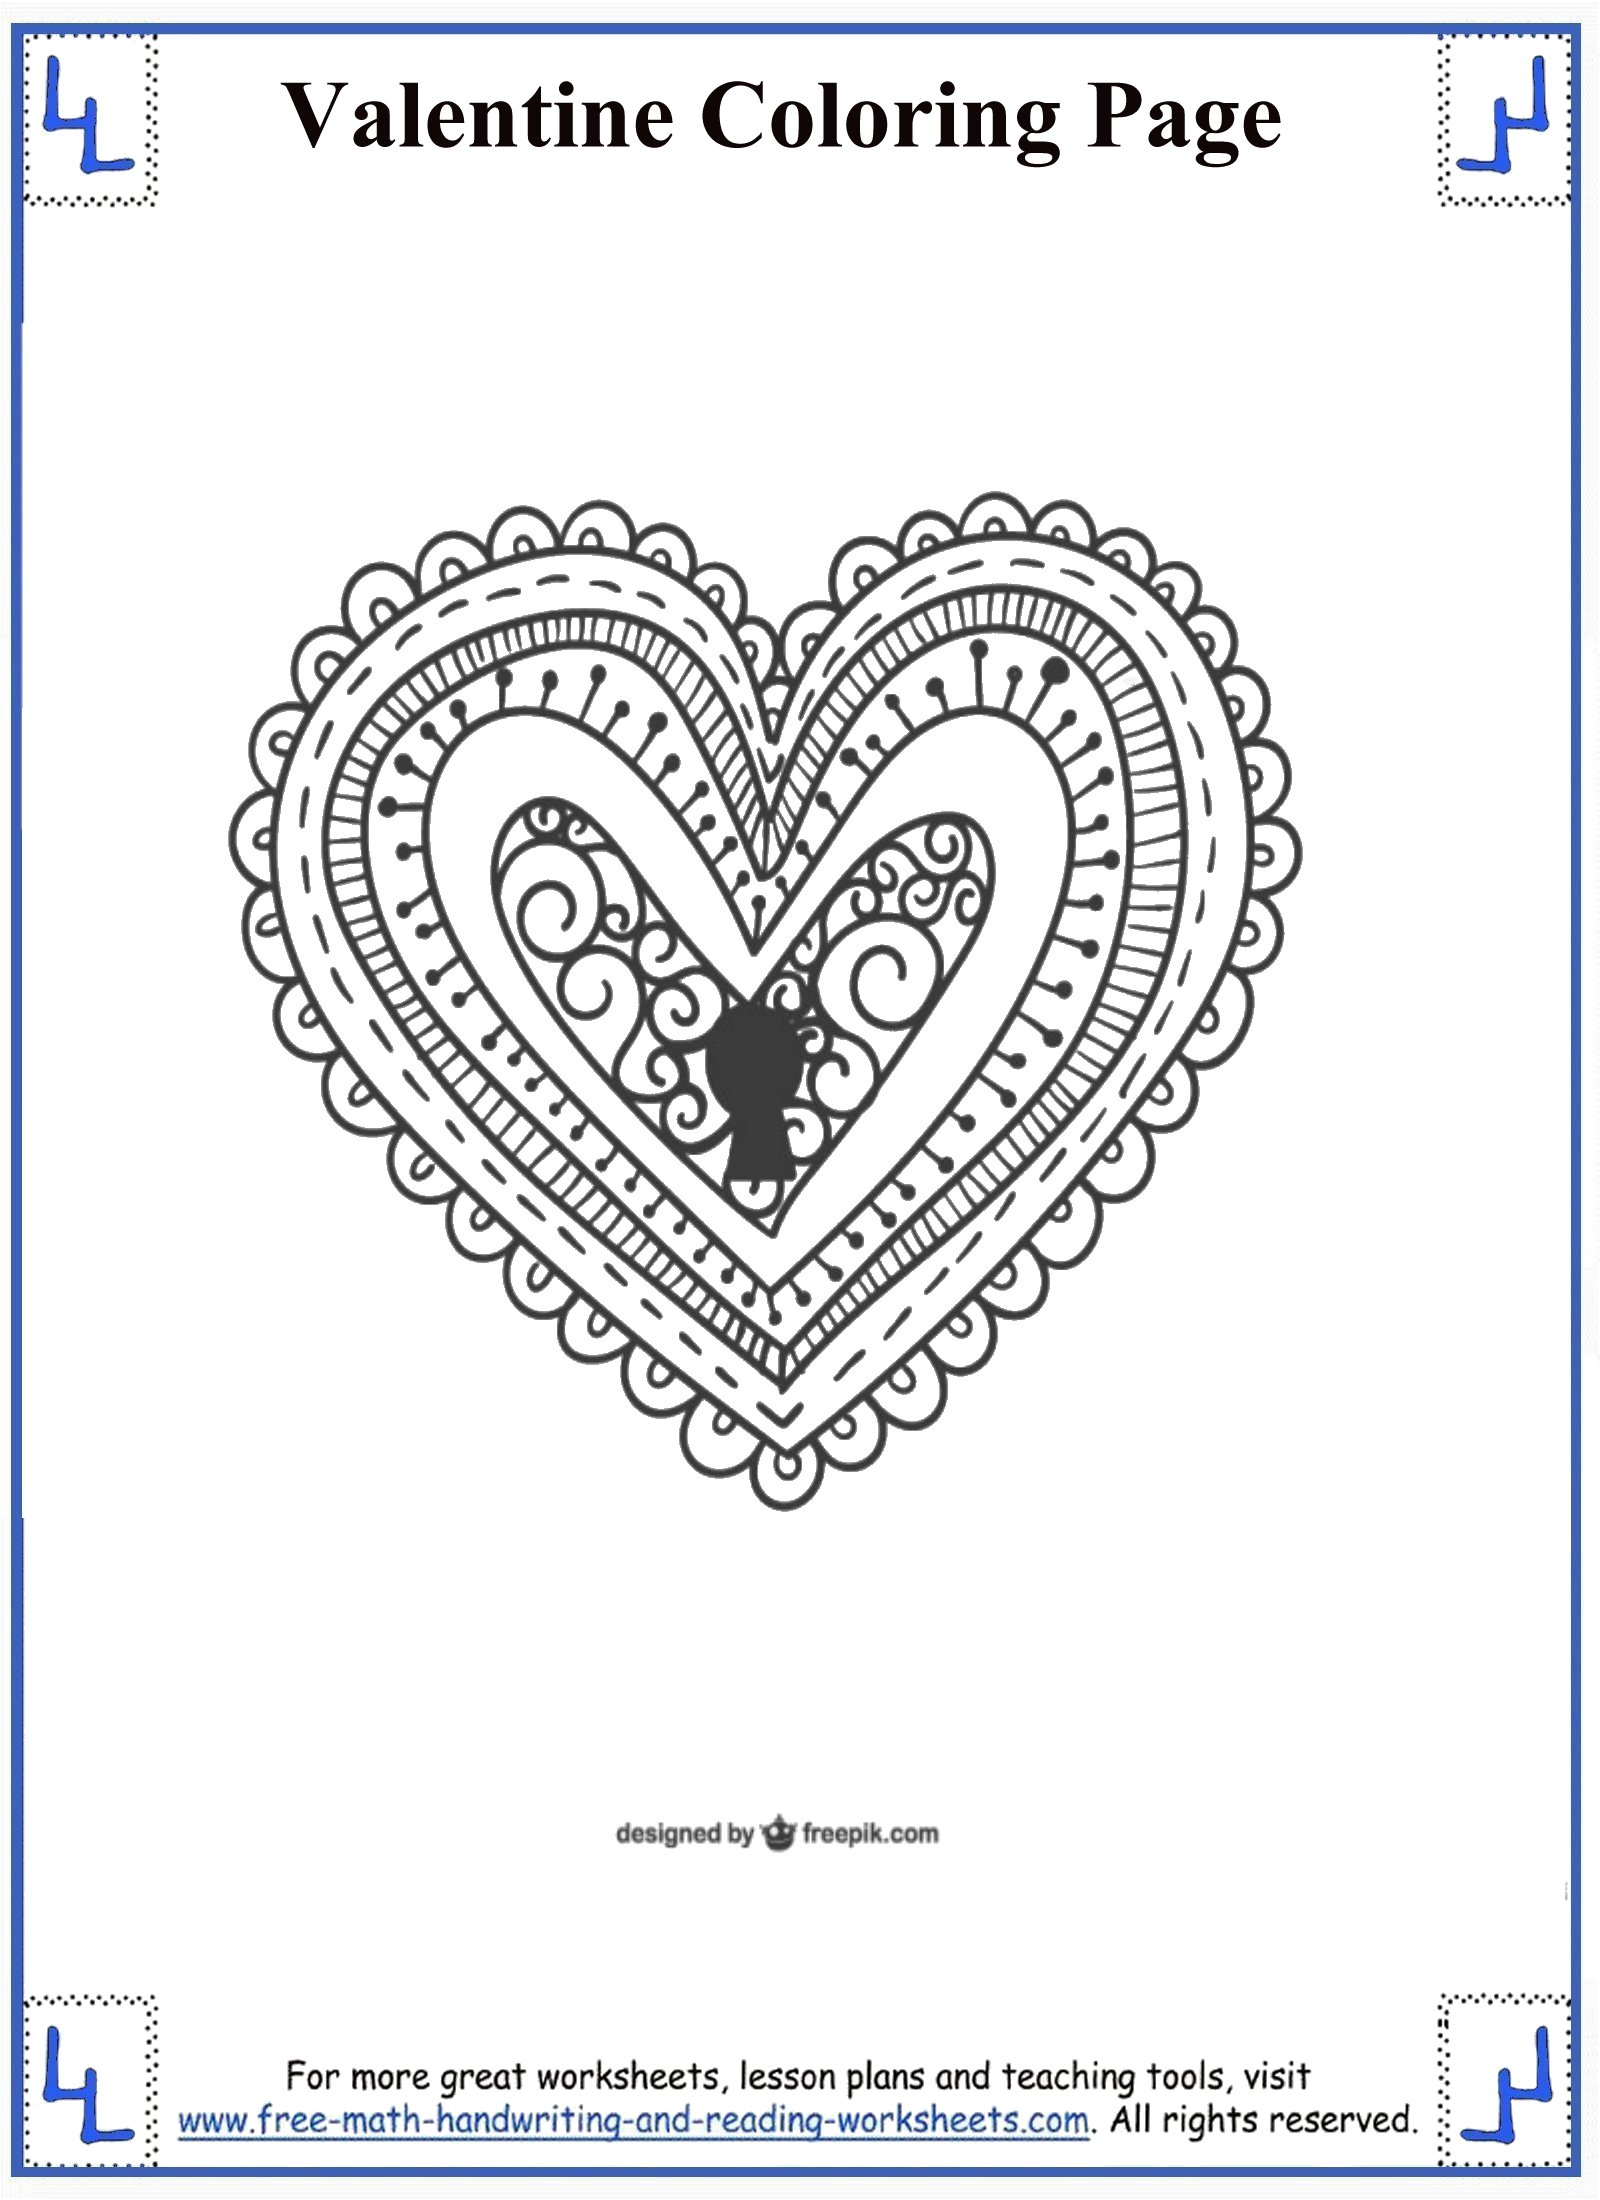 valentines-day-coloring-pages-6 Vowels Worksheets Free Printable on long i printable worksheets, free printable front worksheets, free printable language worksheets, free printable semicolon worksheets, free printable laundry worksheets, free printable spring worksheets kindergarten, free printable grammar worksheets, free printable worksheets elementary, free printable suffix worksheets, short-vowel worksheets, free printable short-vowel activities, free printable predicate worksheets, free printable green worksheets, free printable blends worksheets, free printable phonics worksheet, free printable ea worksheets, free printable test worksheets, common core printable worksheets, free printable comma worksheets, free printable vocab worksheets,